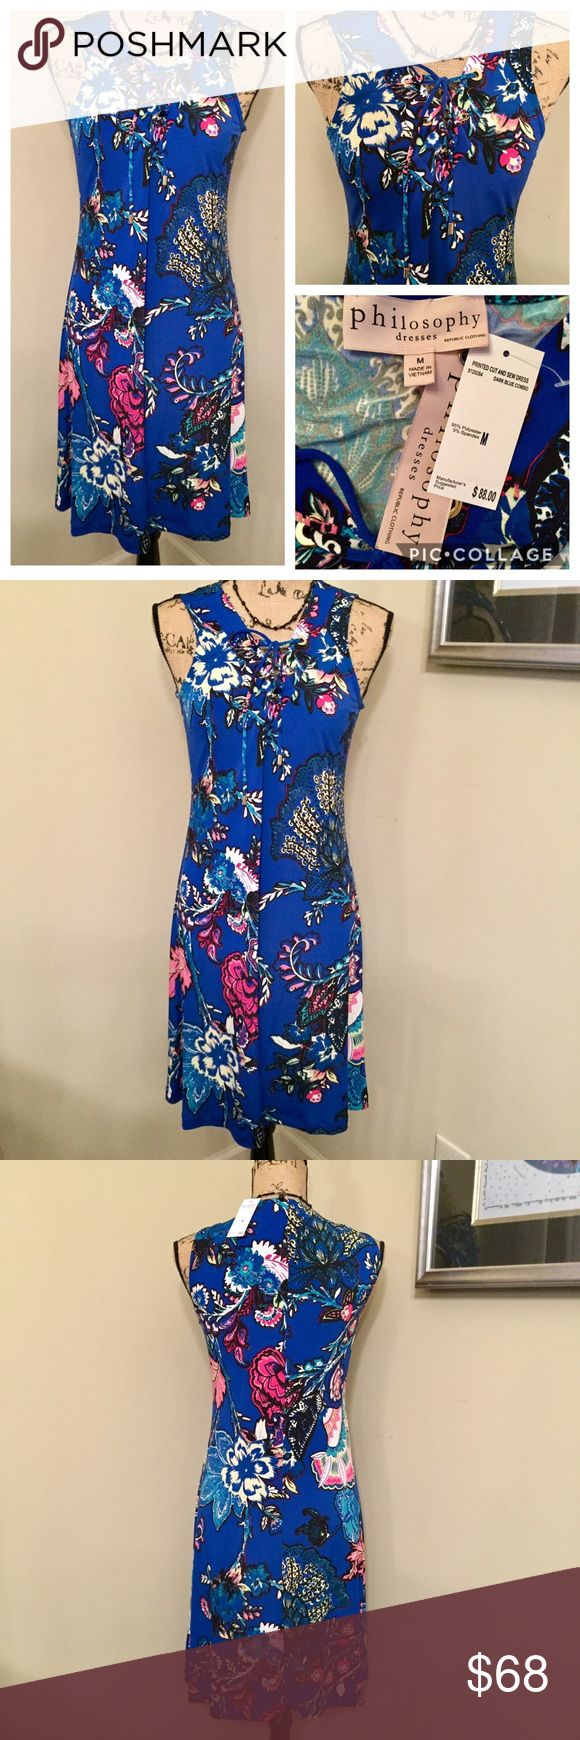 """🆕🎁 PHILOSOPHY Sleeveless Dress Sundress NWT PHILOSOPHY Dresses Republic Clothing Multicolored Sleeveless Dress / Sundress  Brand New With Tags  MSRP: $88.00 Plus Tax Size: Medium  Measurements: Armpit To Armpit: 17"""" Length: 37"""" (From Back Of Neck) Color: """" Dark Blue Combo"""" (Multicolored) Front Tie Neckline With Polished Gold Tone Grommets  Machine Wash Cold, Tumble Dry Low  Smoke Free Home 🛍Bundle & Save🛍 Philosophy Dresses Midi"""